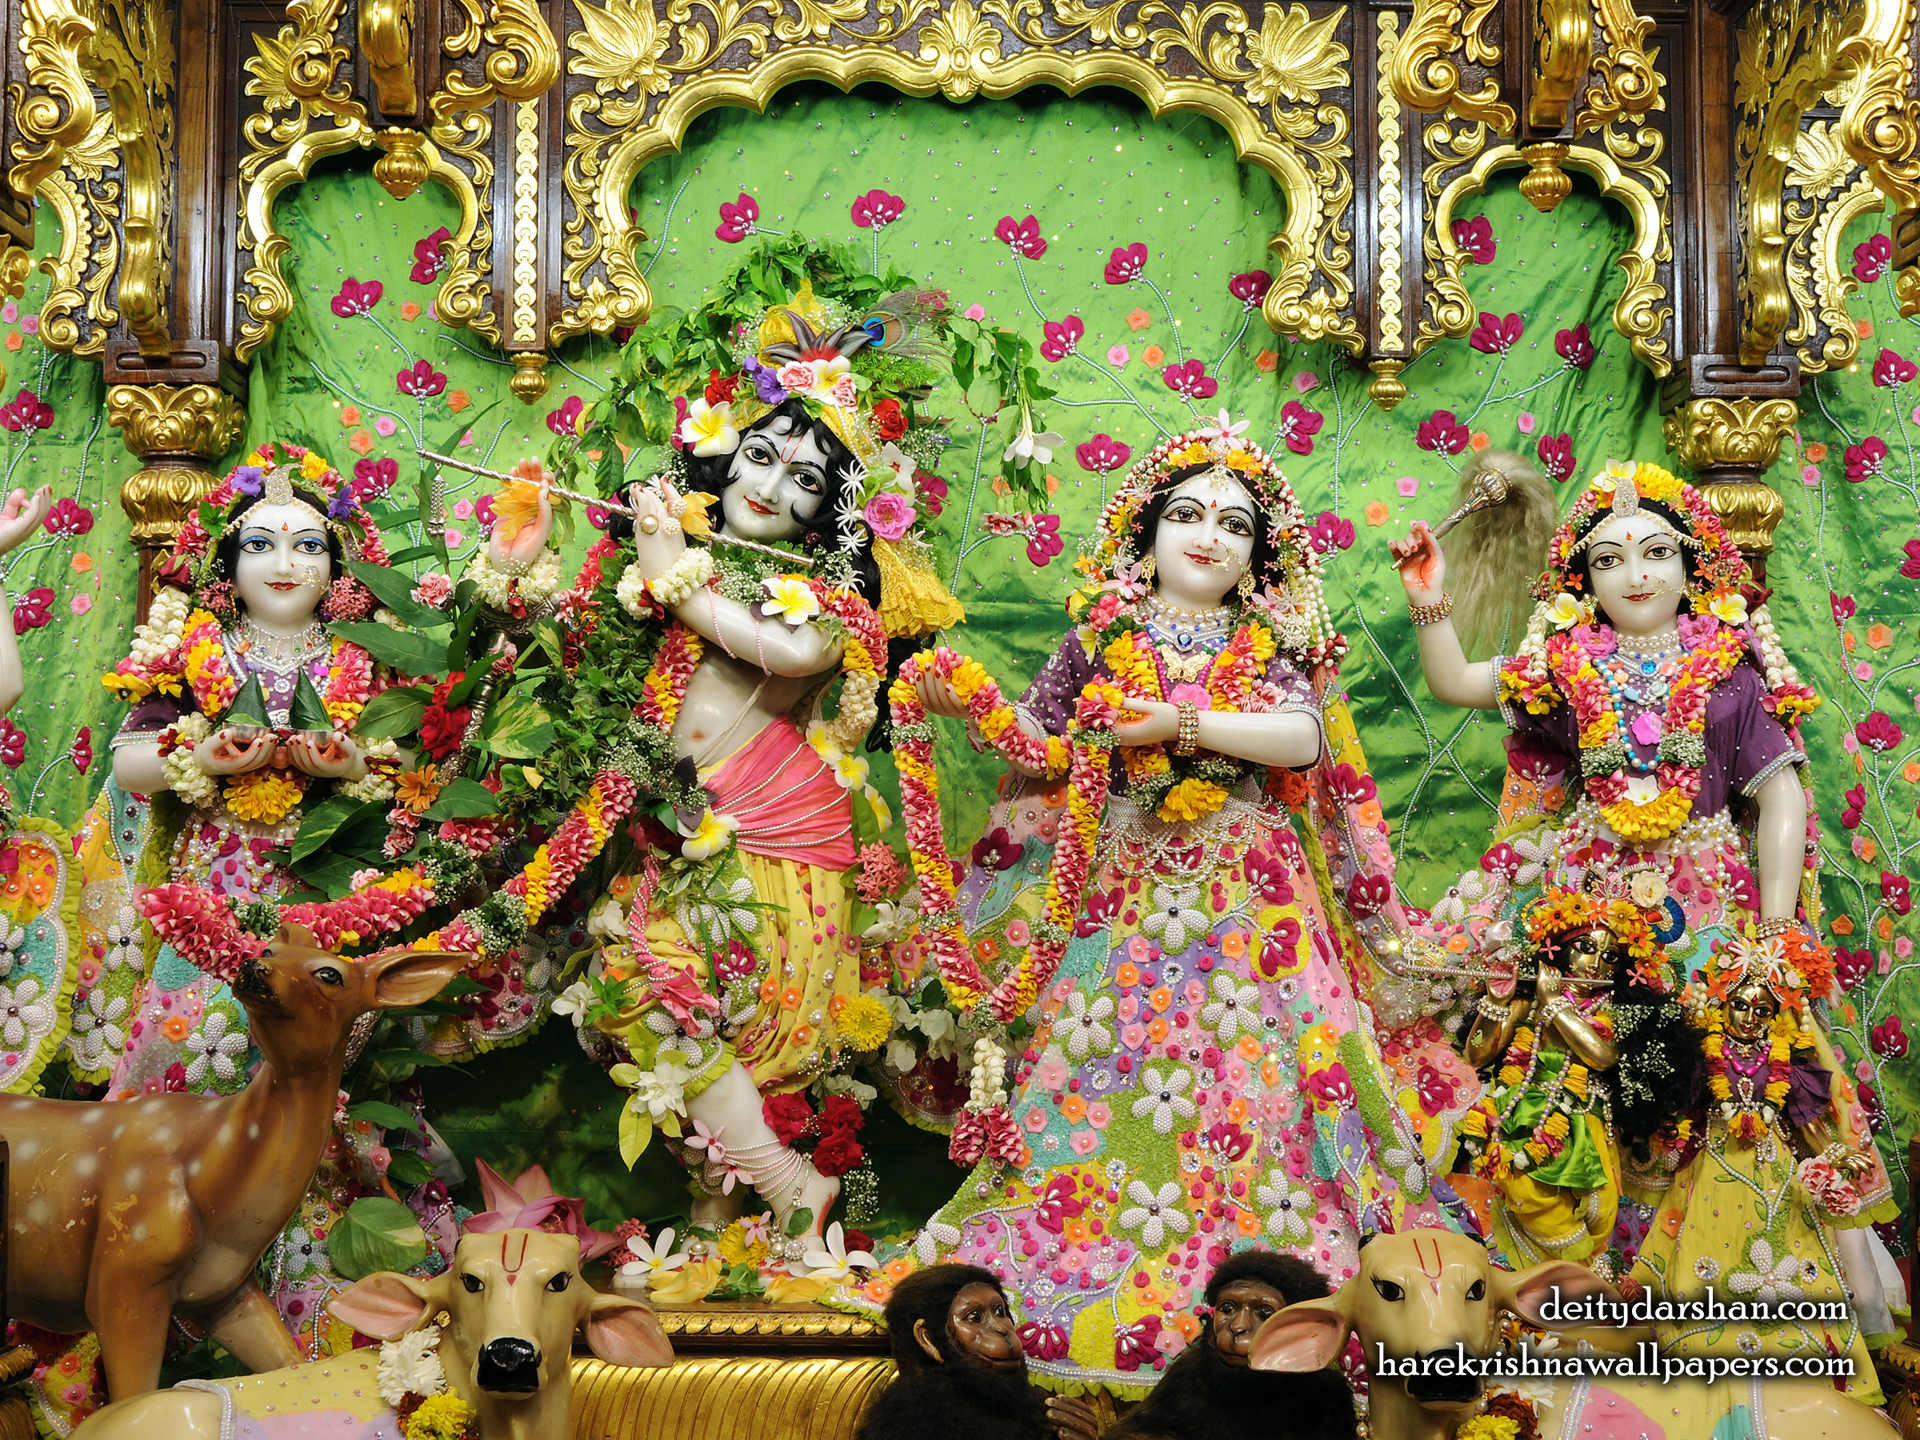 Sri Sri Radha Gopinath Lalita Vishakha Wallpaper (060) Size 1920x1440 Download